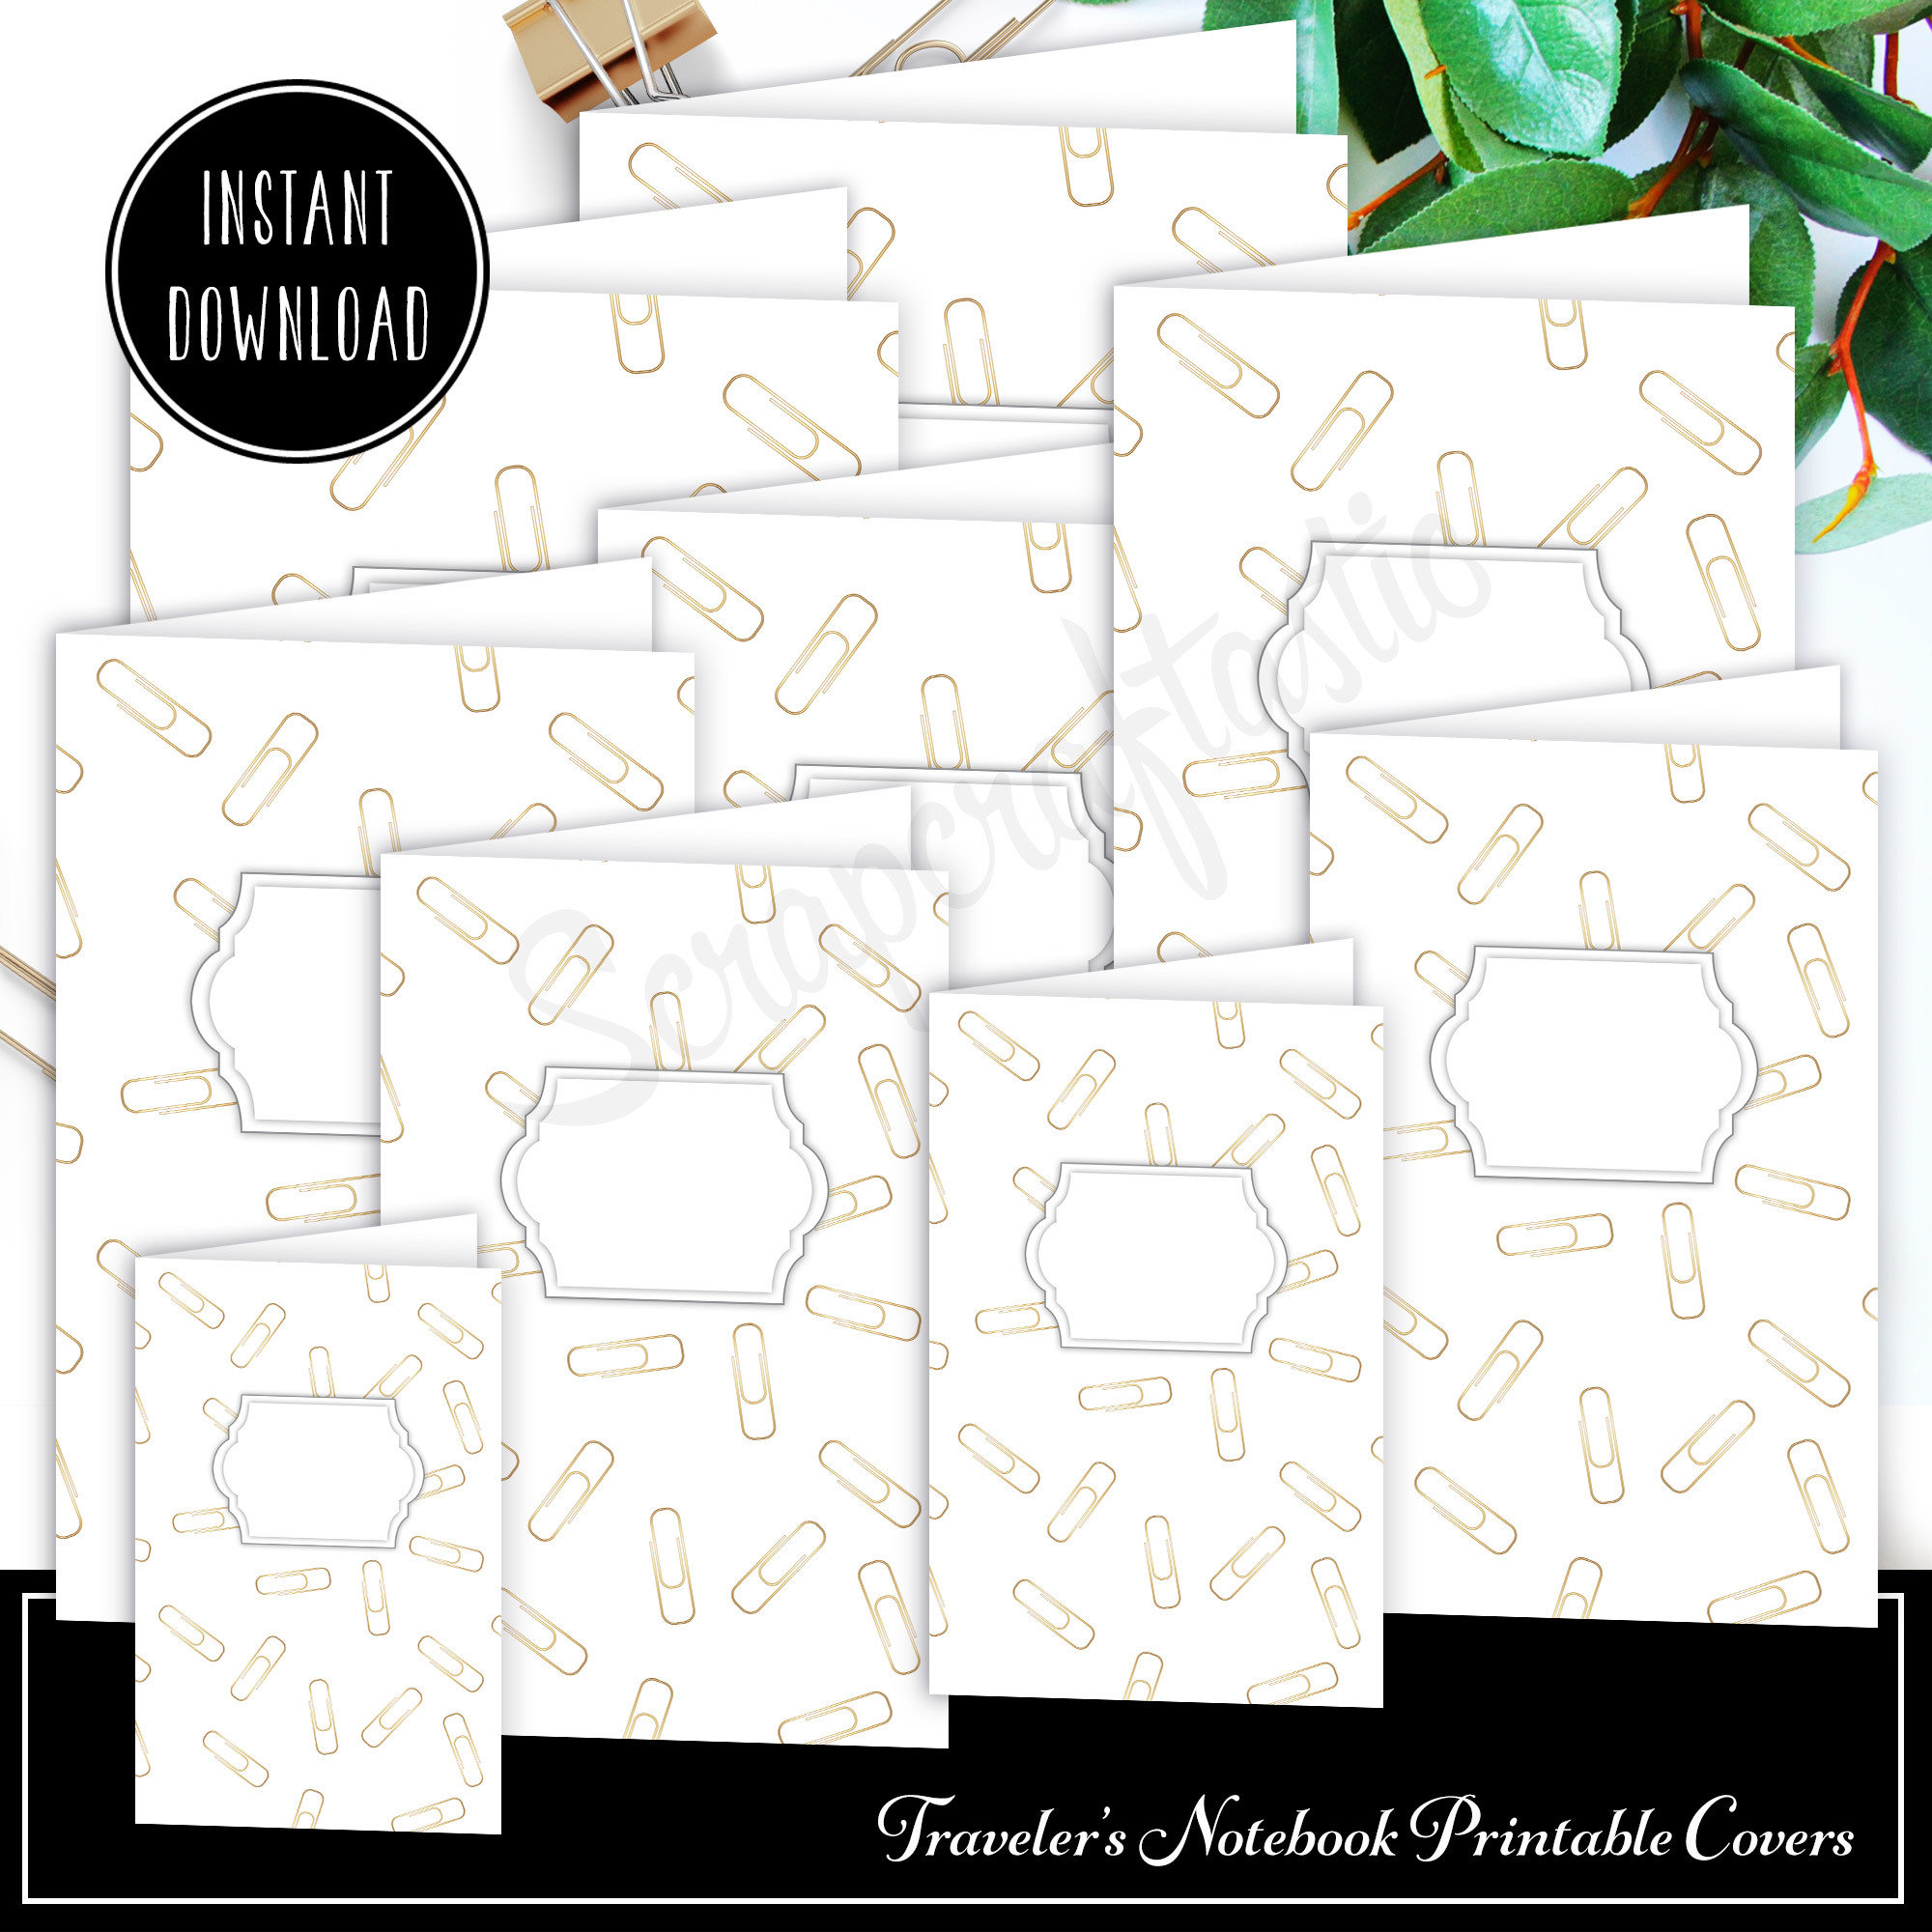 Gold Paper Clip Traveler's Notebook Insert Cover Printable and Patterned Paper Set 05002